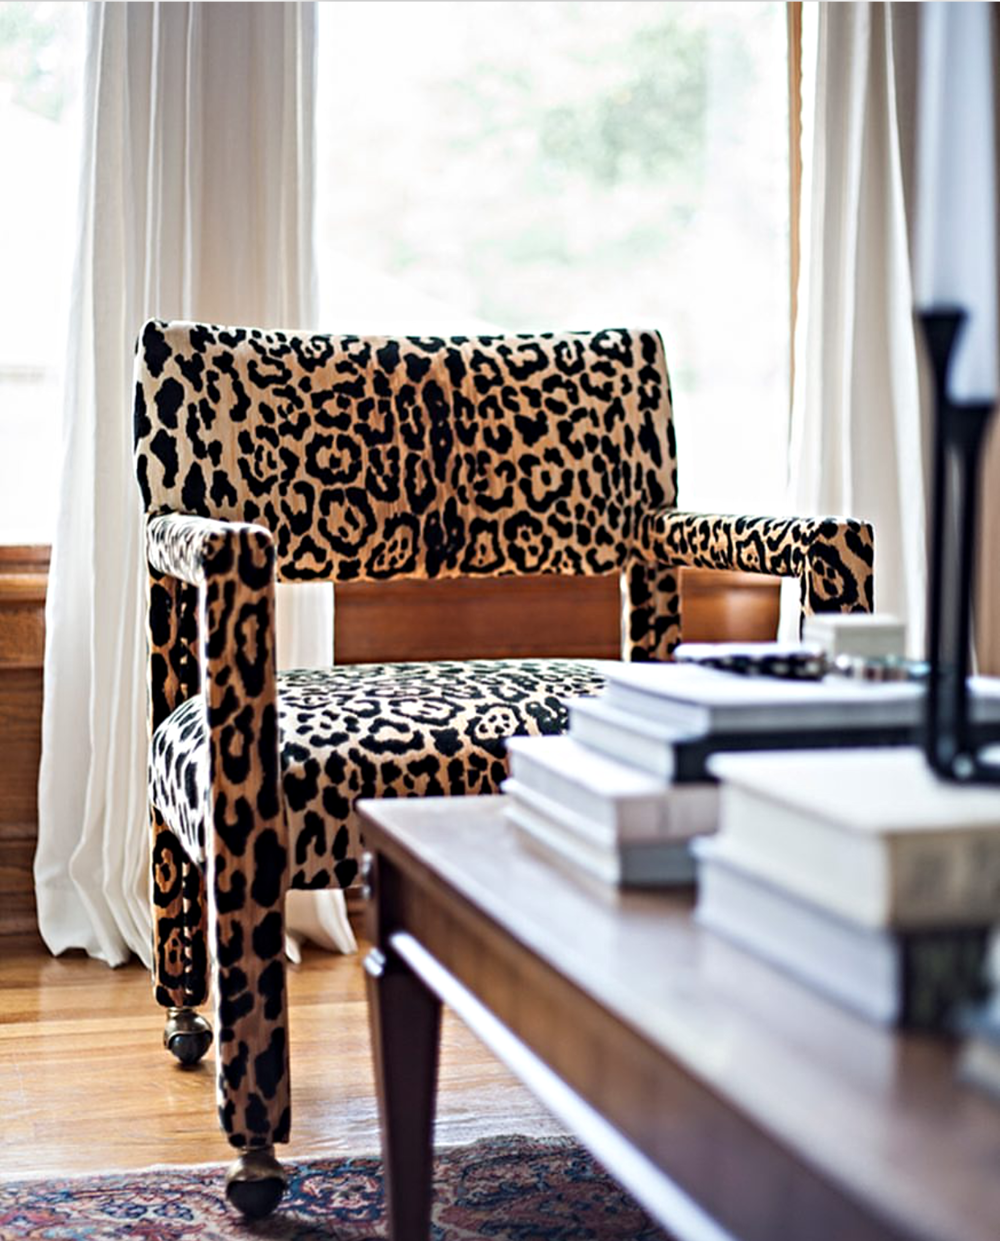 Leopard Parsons Chair Inspiration from one of My Favorite Instagrammers: The Makerista